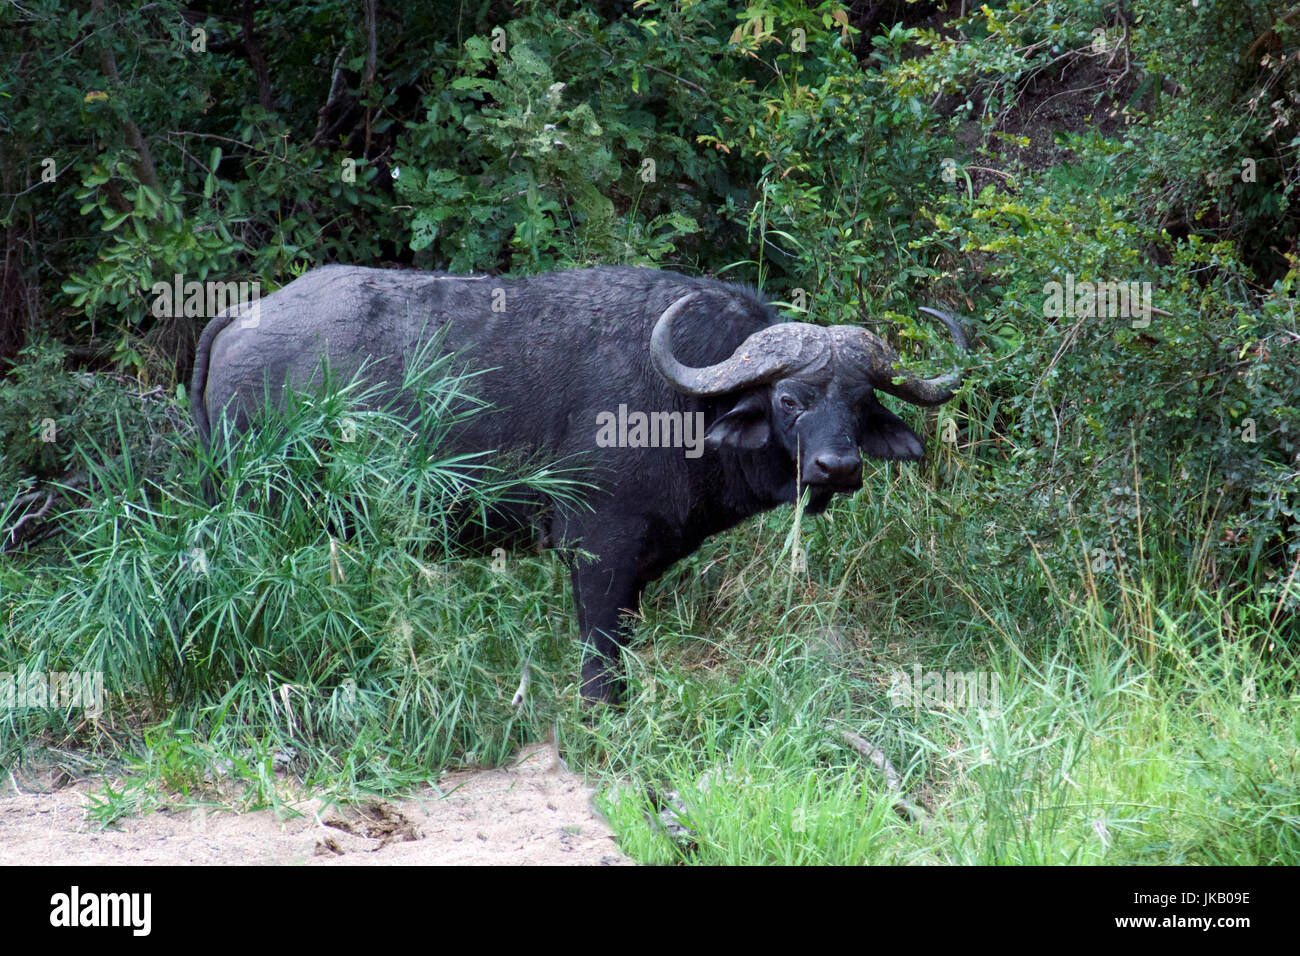 African or Cape Buffalo in dense undergrowth Kruger National Park South Africa - Stock Image